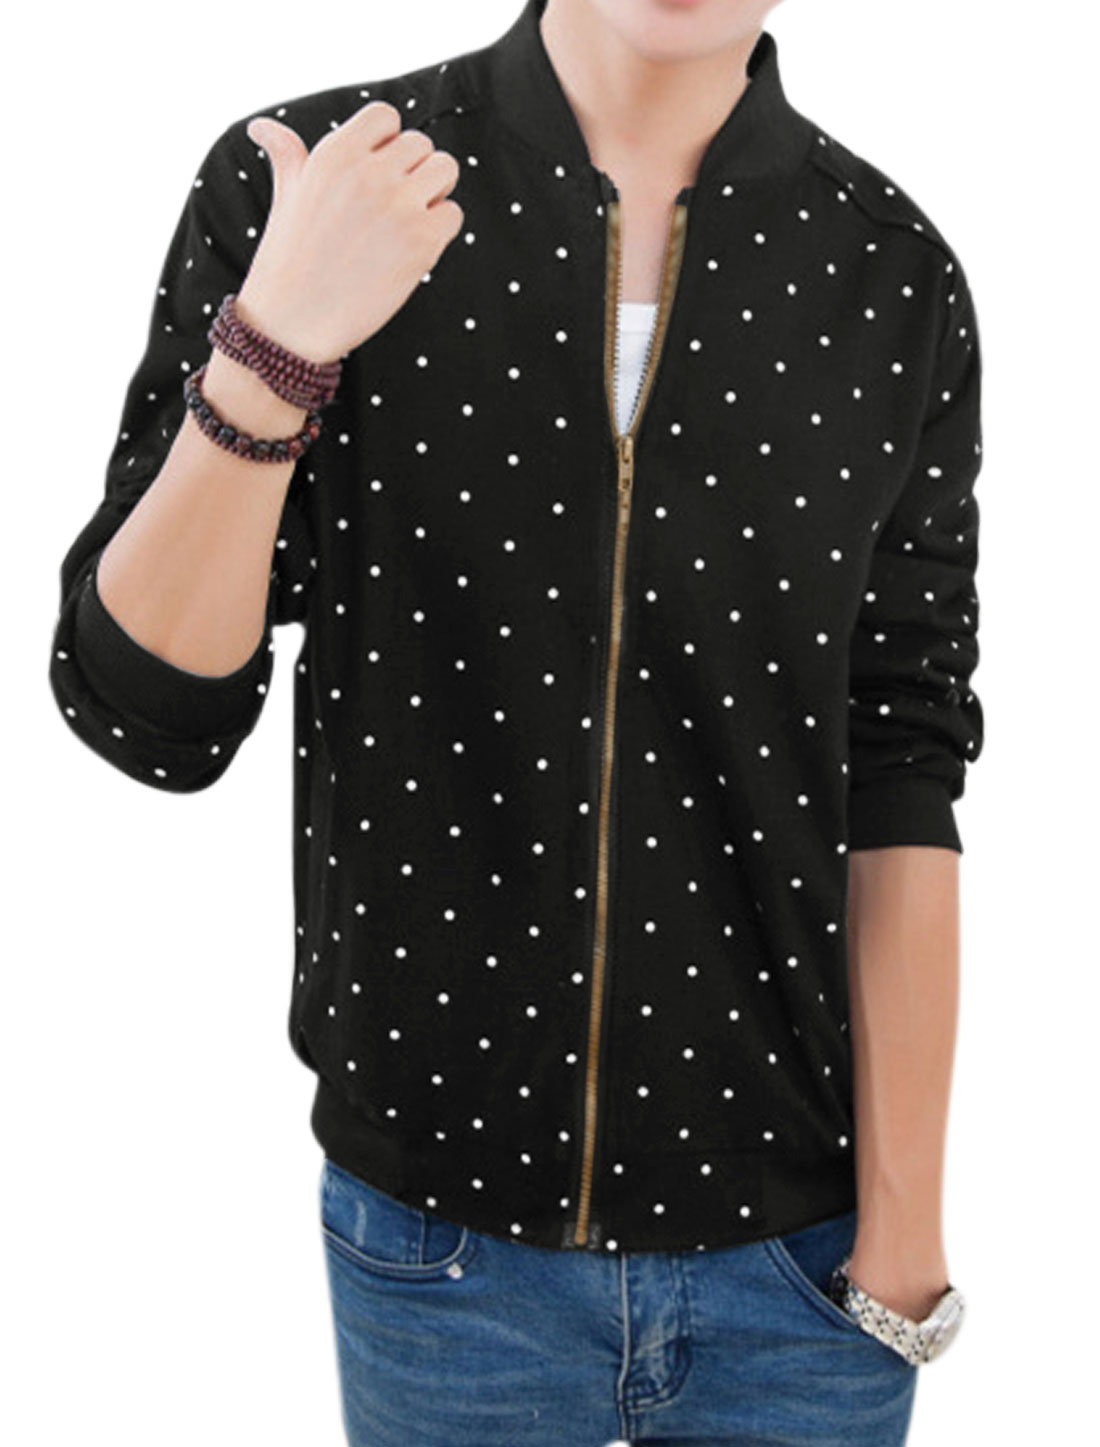 Men Dots Prints Stand Collar Long Sleeves Two Pockets Side Jacket Black M